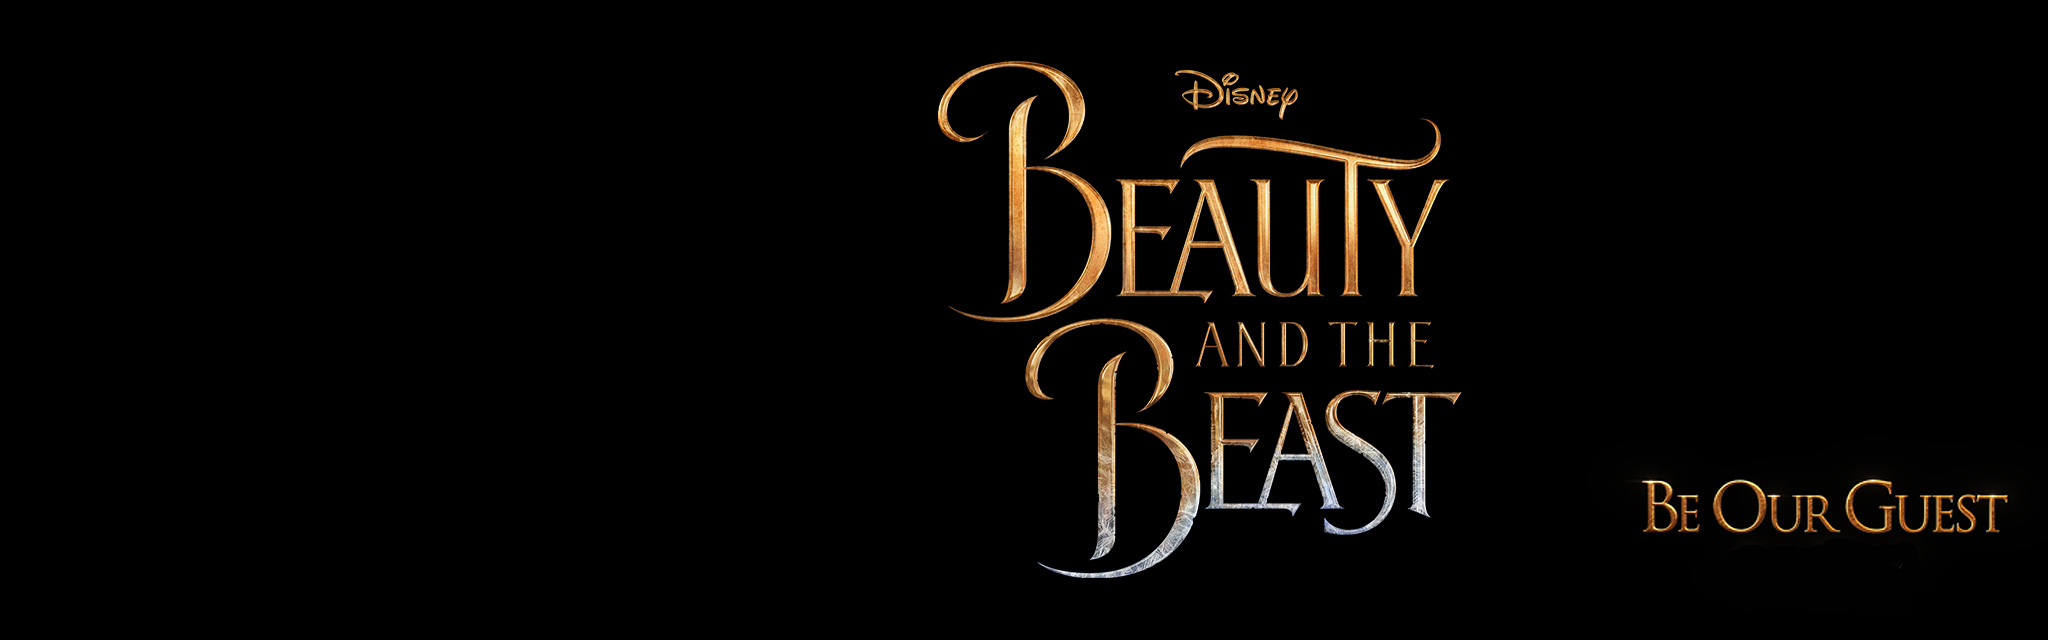 Beauty and the Beast title treament trailer hero